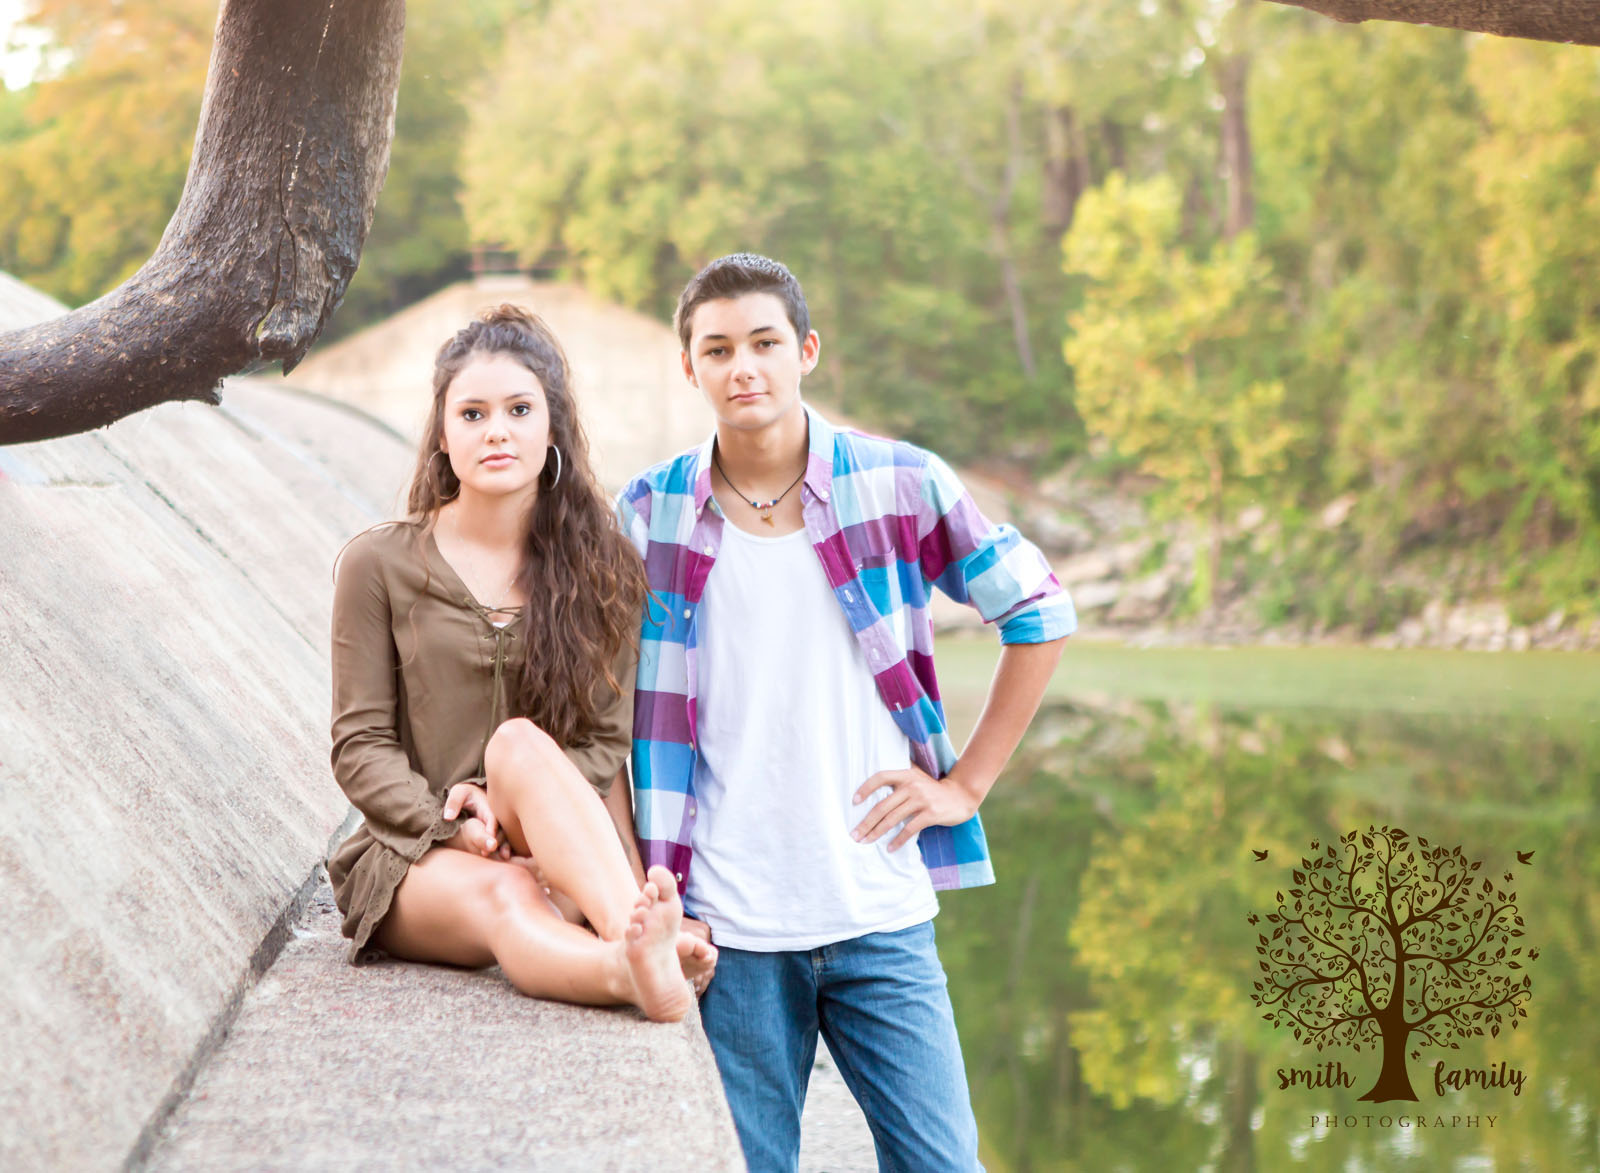 best_friends_share_a_senior_session_smith_family_photography_texas